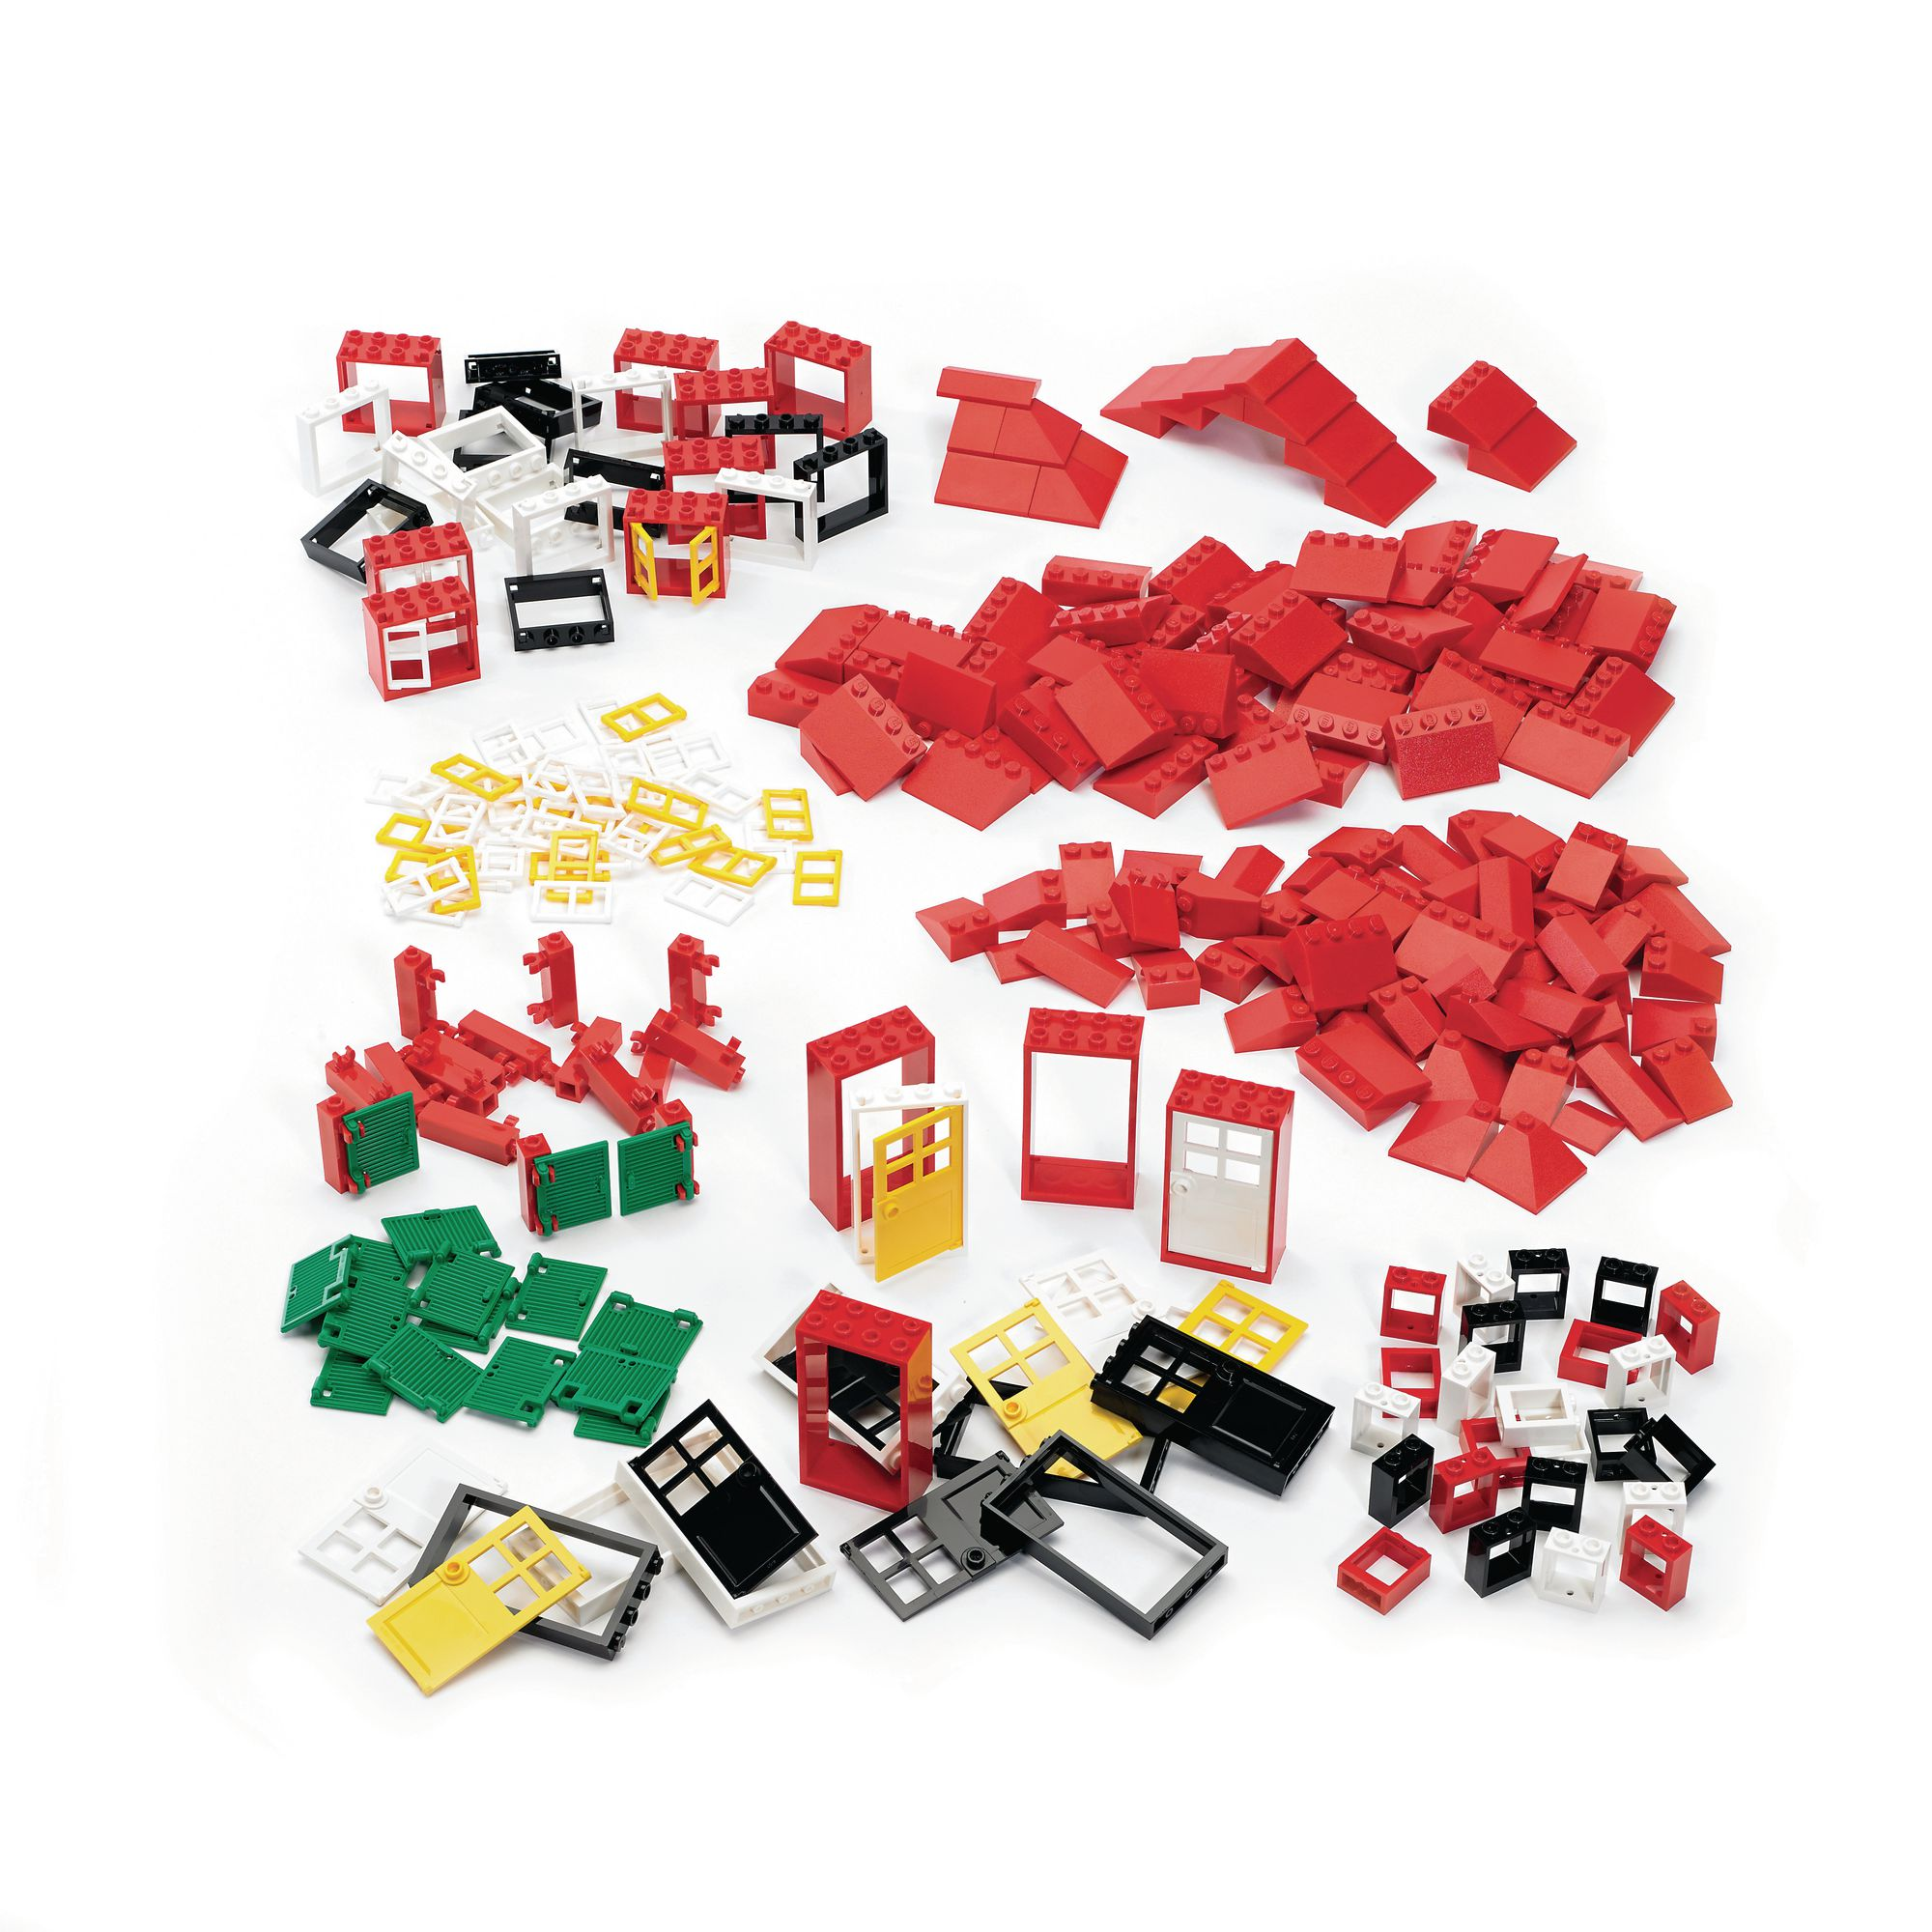 LEGO® Doors Windows and Roof Tiles  sc 1 st  GLS Educational Supplies & LEGO® Doors Windows and Roof Tiles | GLS Educational Supplies